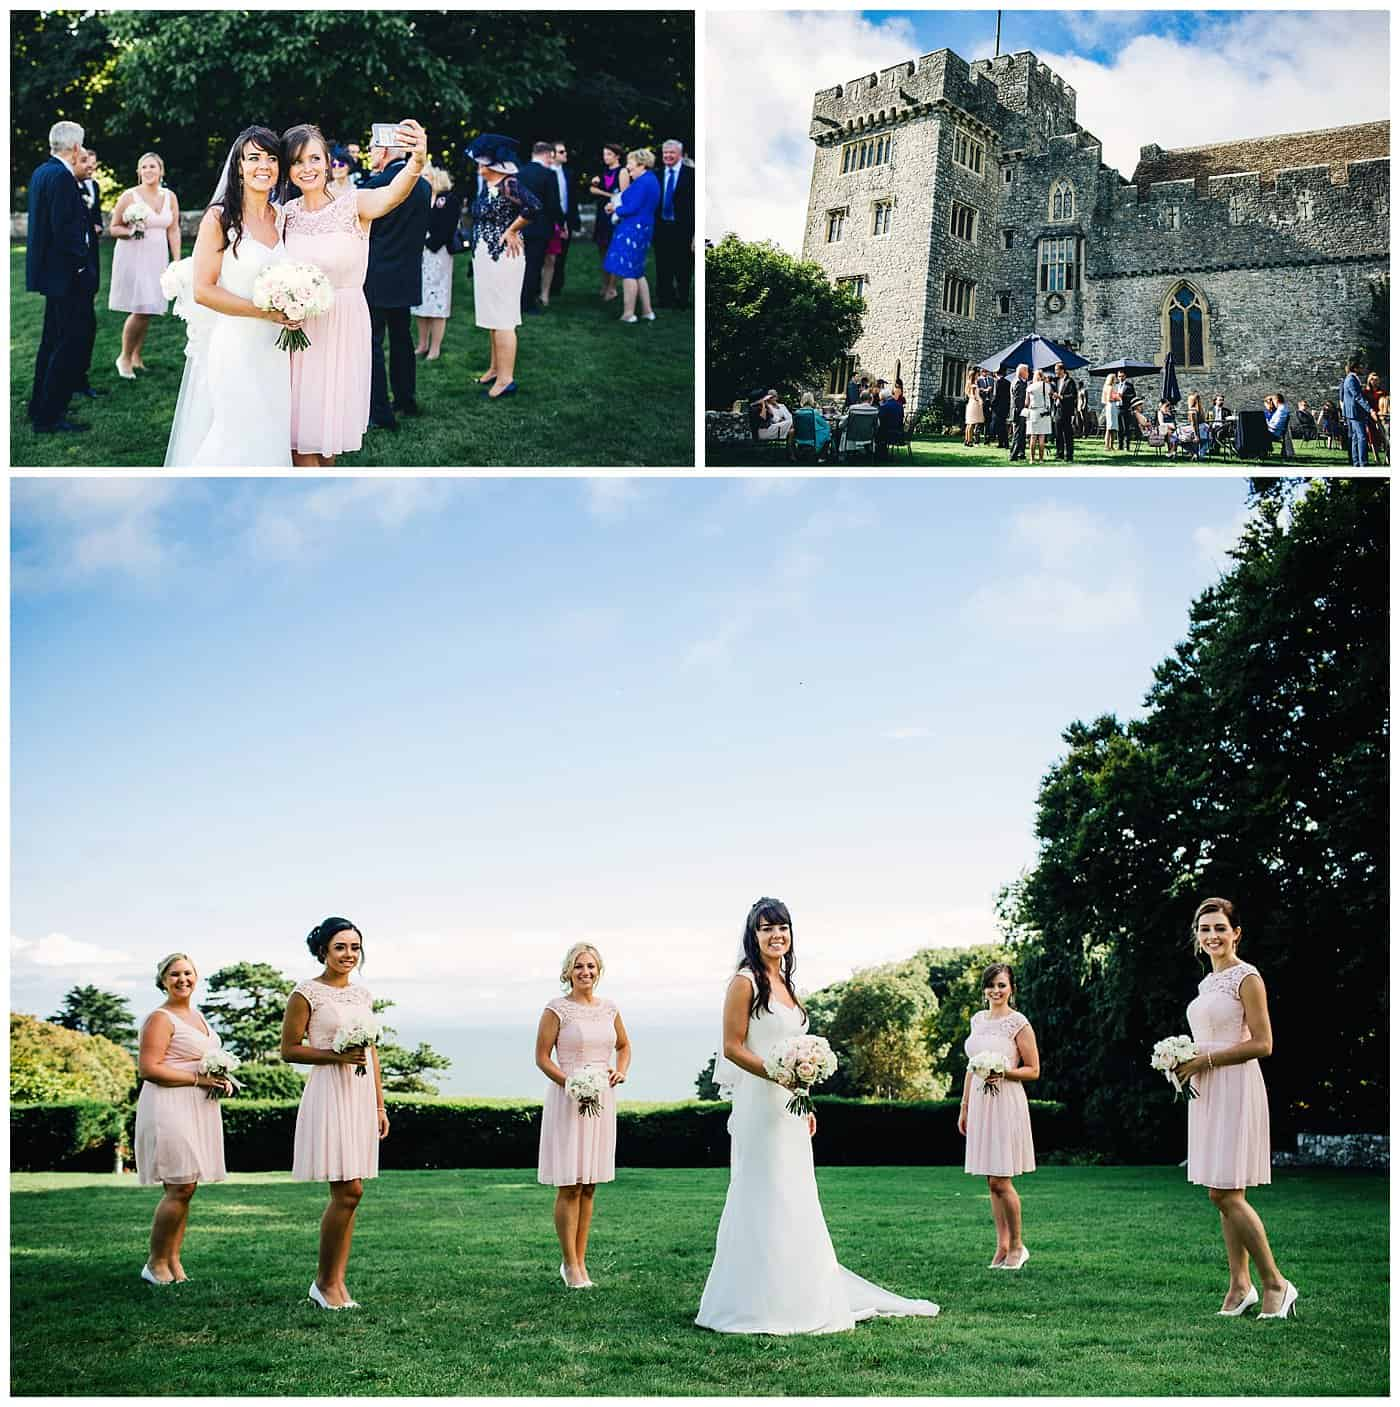 ST DONAT'S CASTLE WEDDING PHOTOGRAPHERS